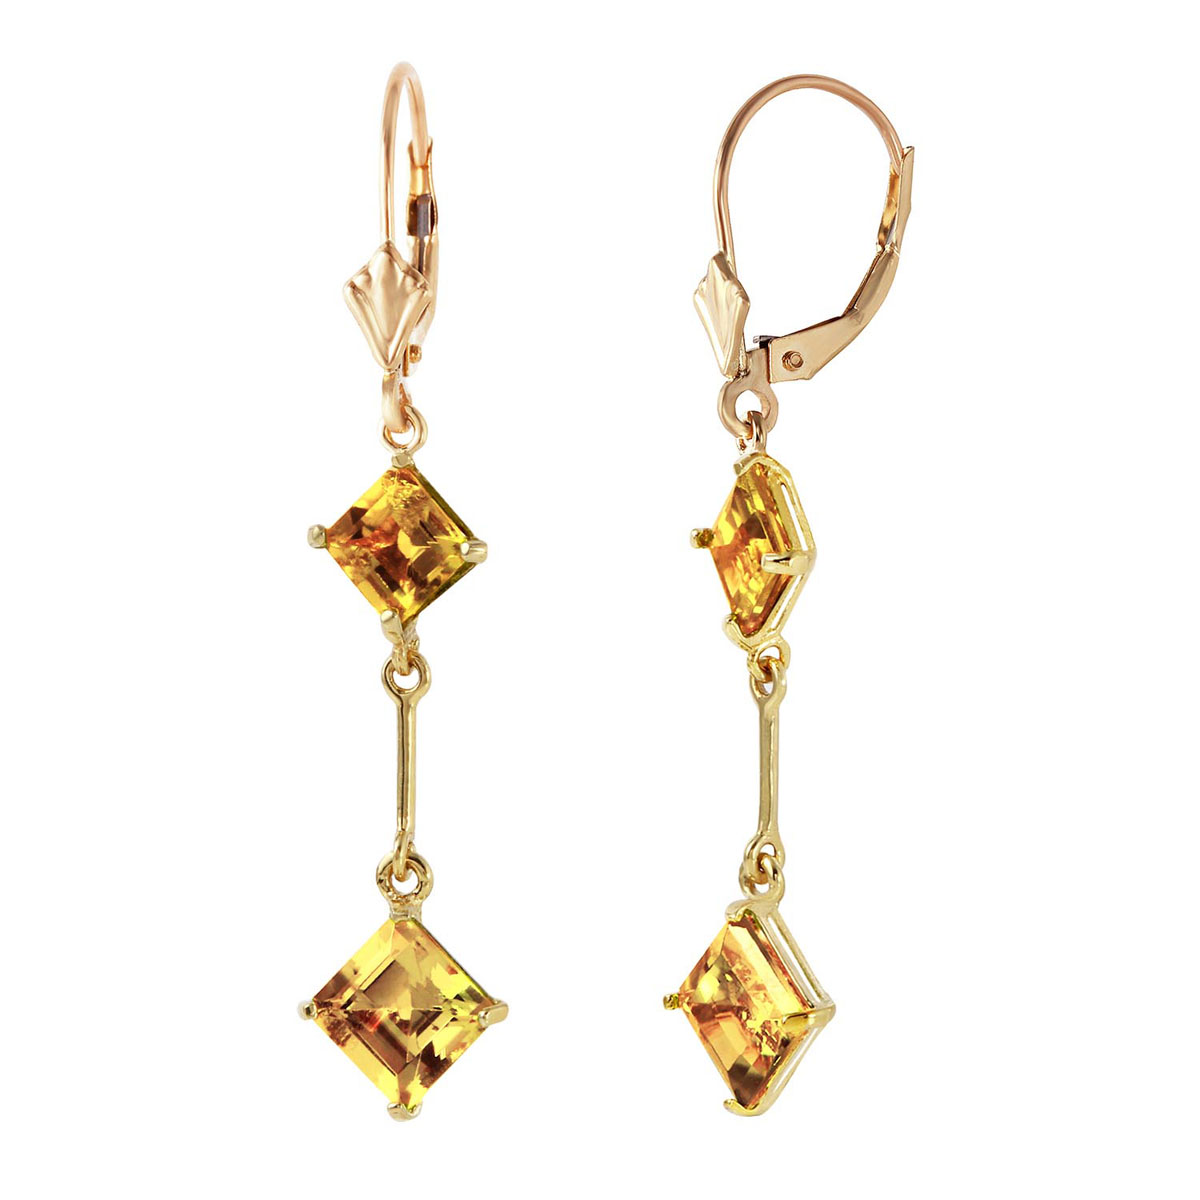 Citrine Two Tier Drop Earrings 3.75 ctw in 9ct Gold